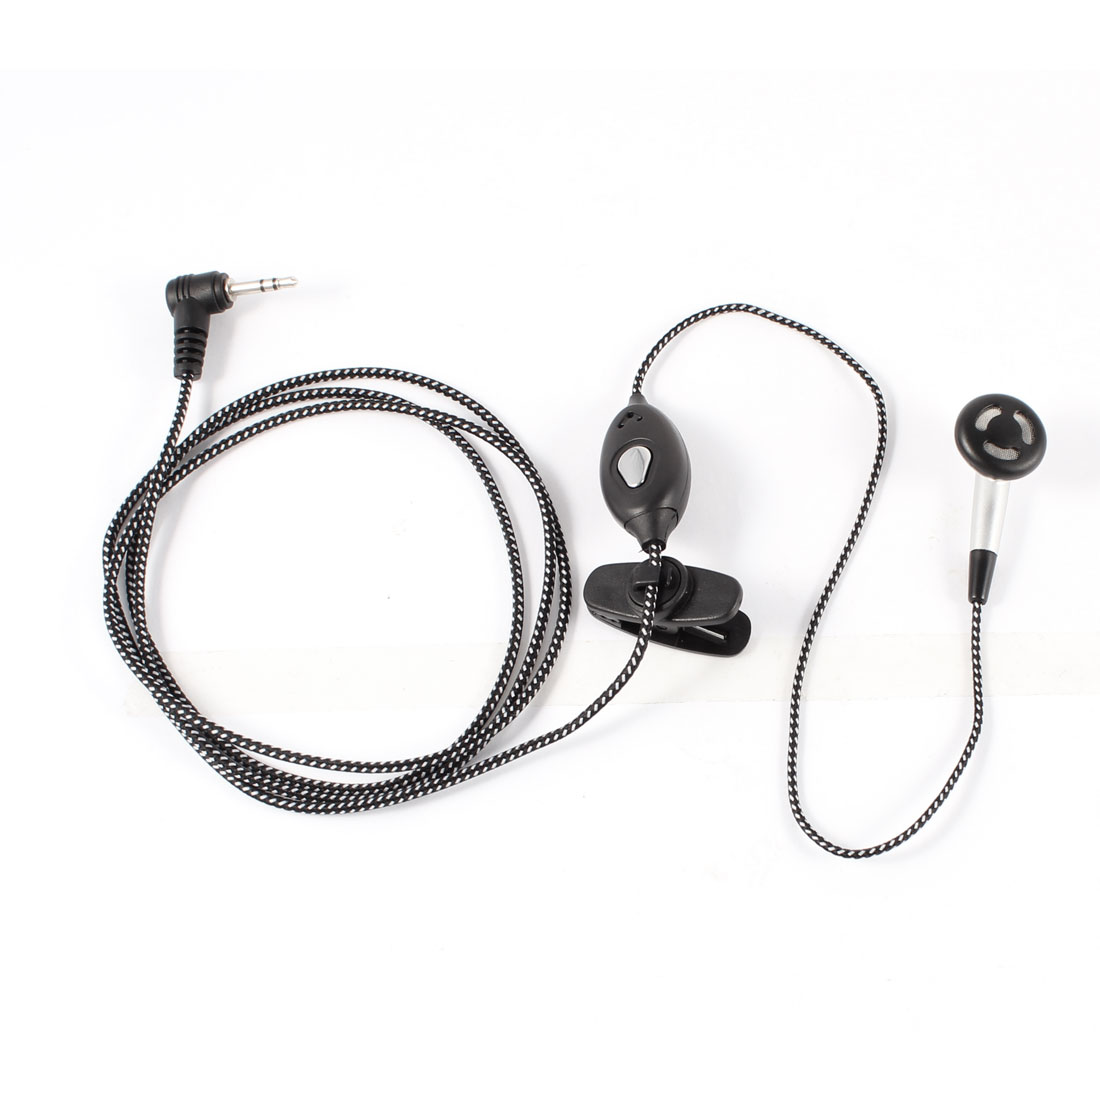 2.5mm Nylon Wire Walkie Talkie Earphone for Motorola T5728 5428 5628